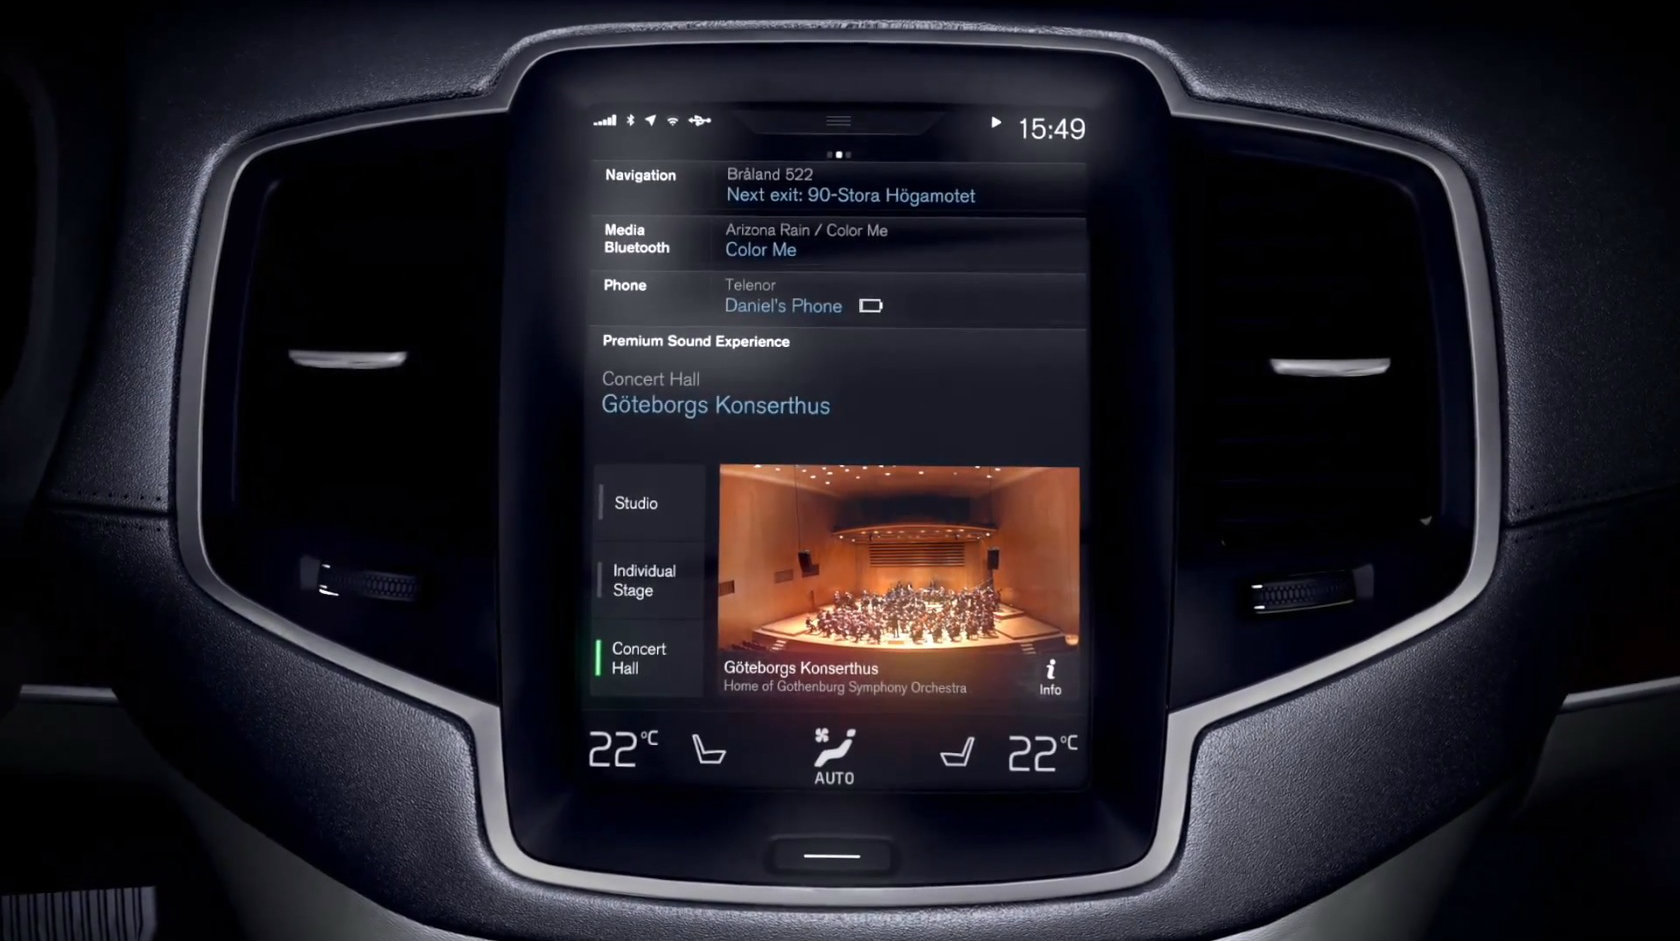 2015 Volvo XC90 Gets Bowers & Wilkins Audio System - autoevolution